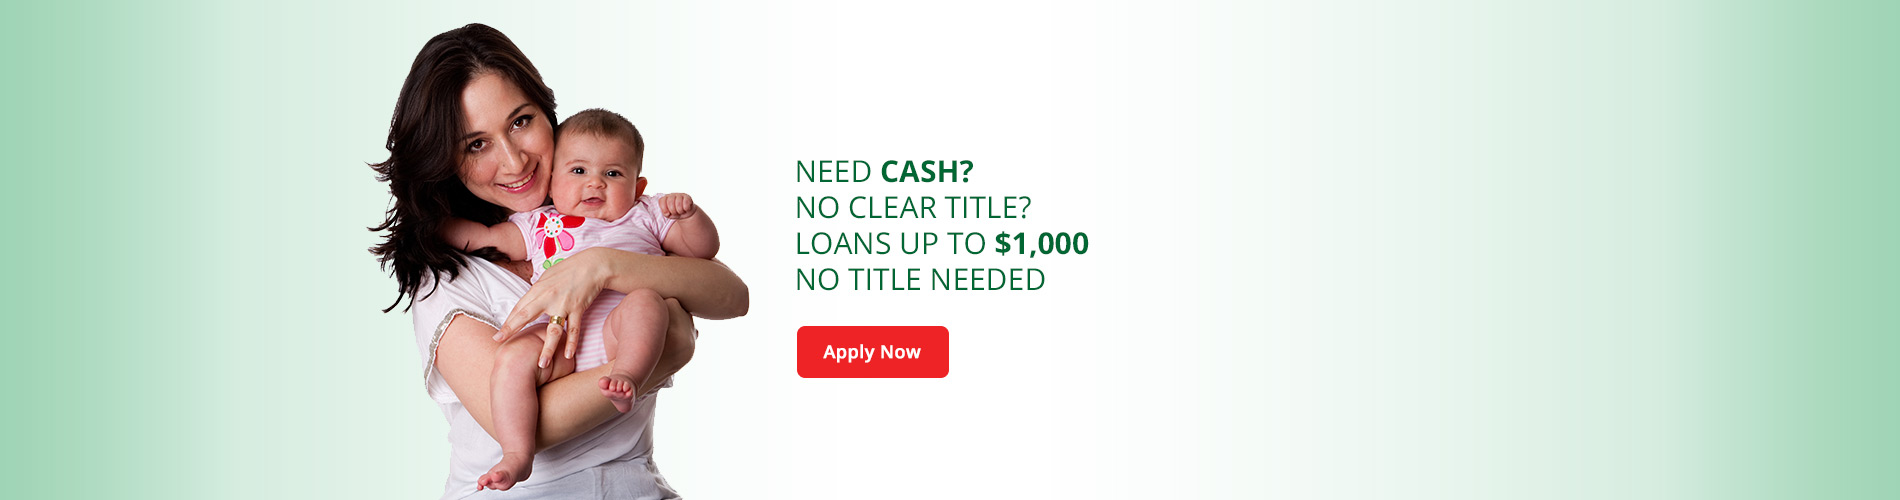 loans up to 1000 no title needed